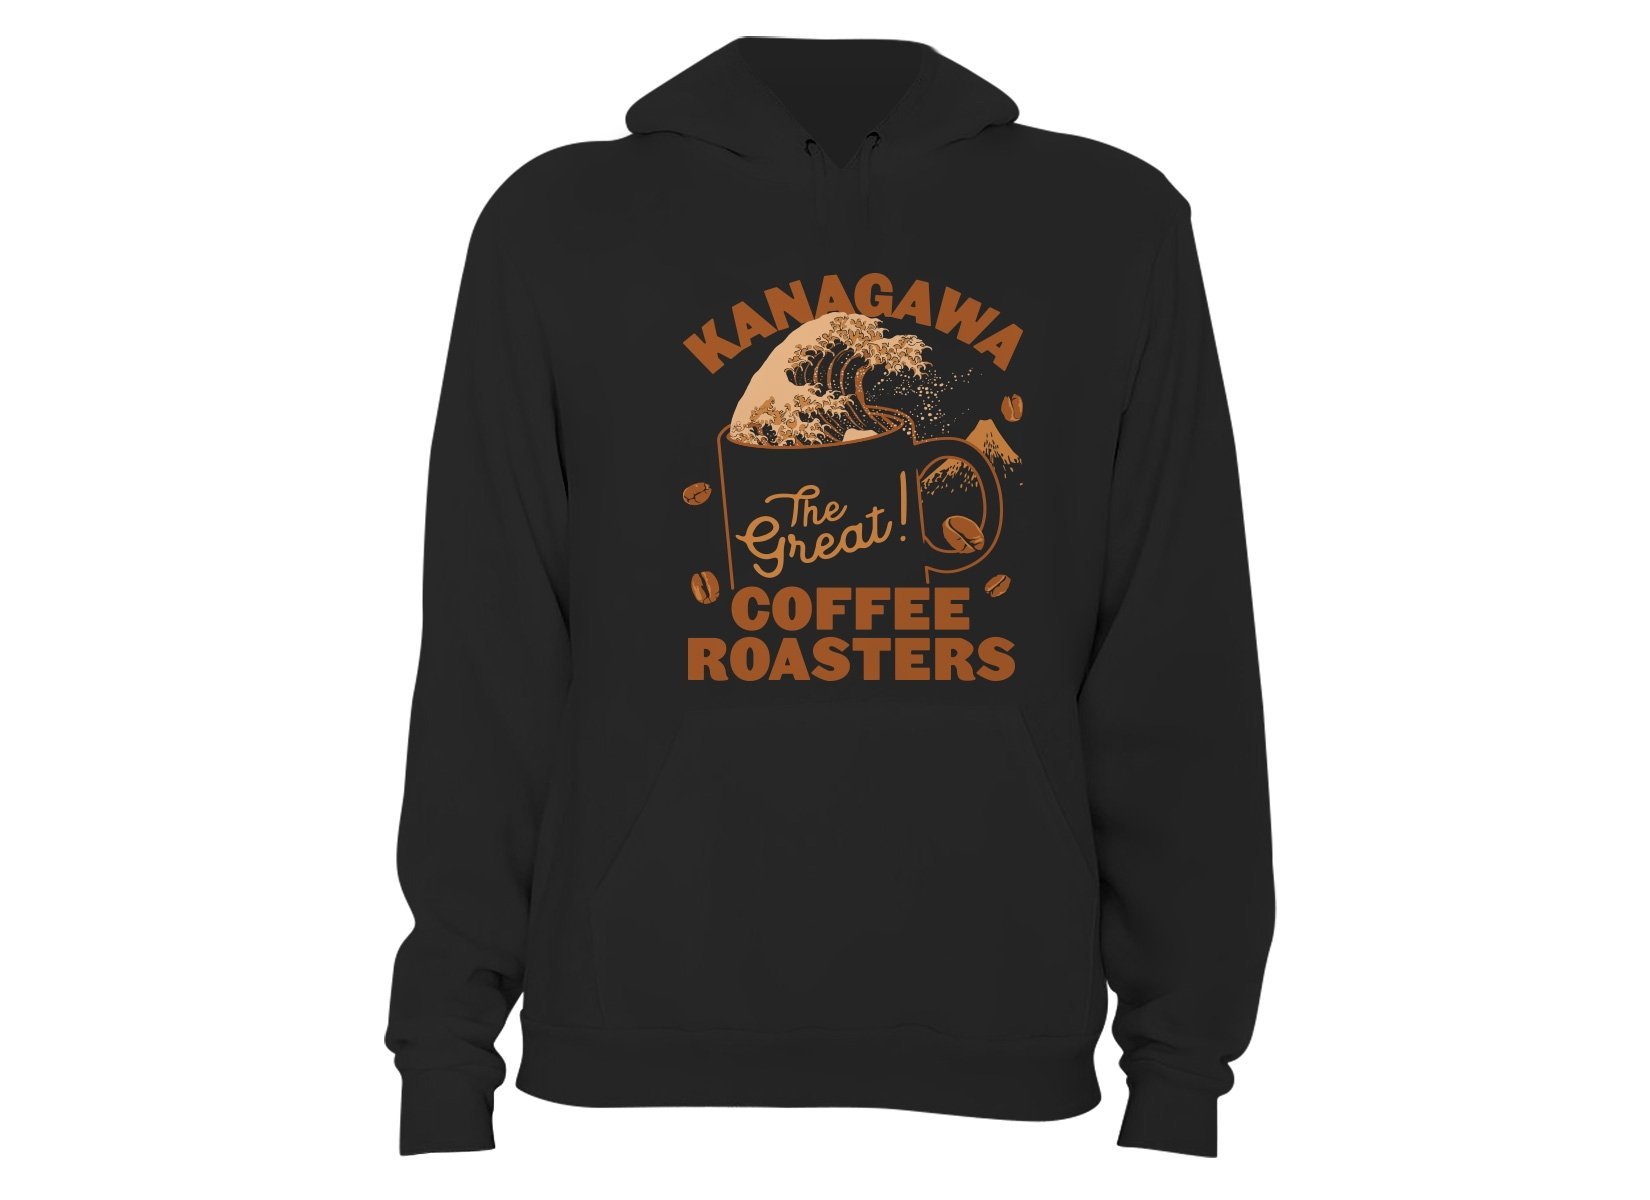 Kanagawa Coffee Roasters on Hoodie